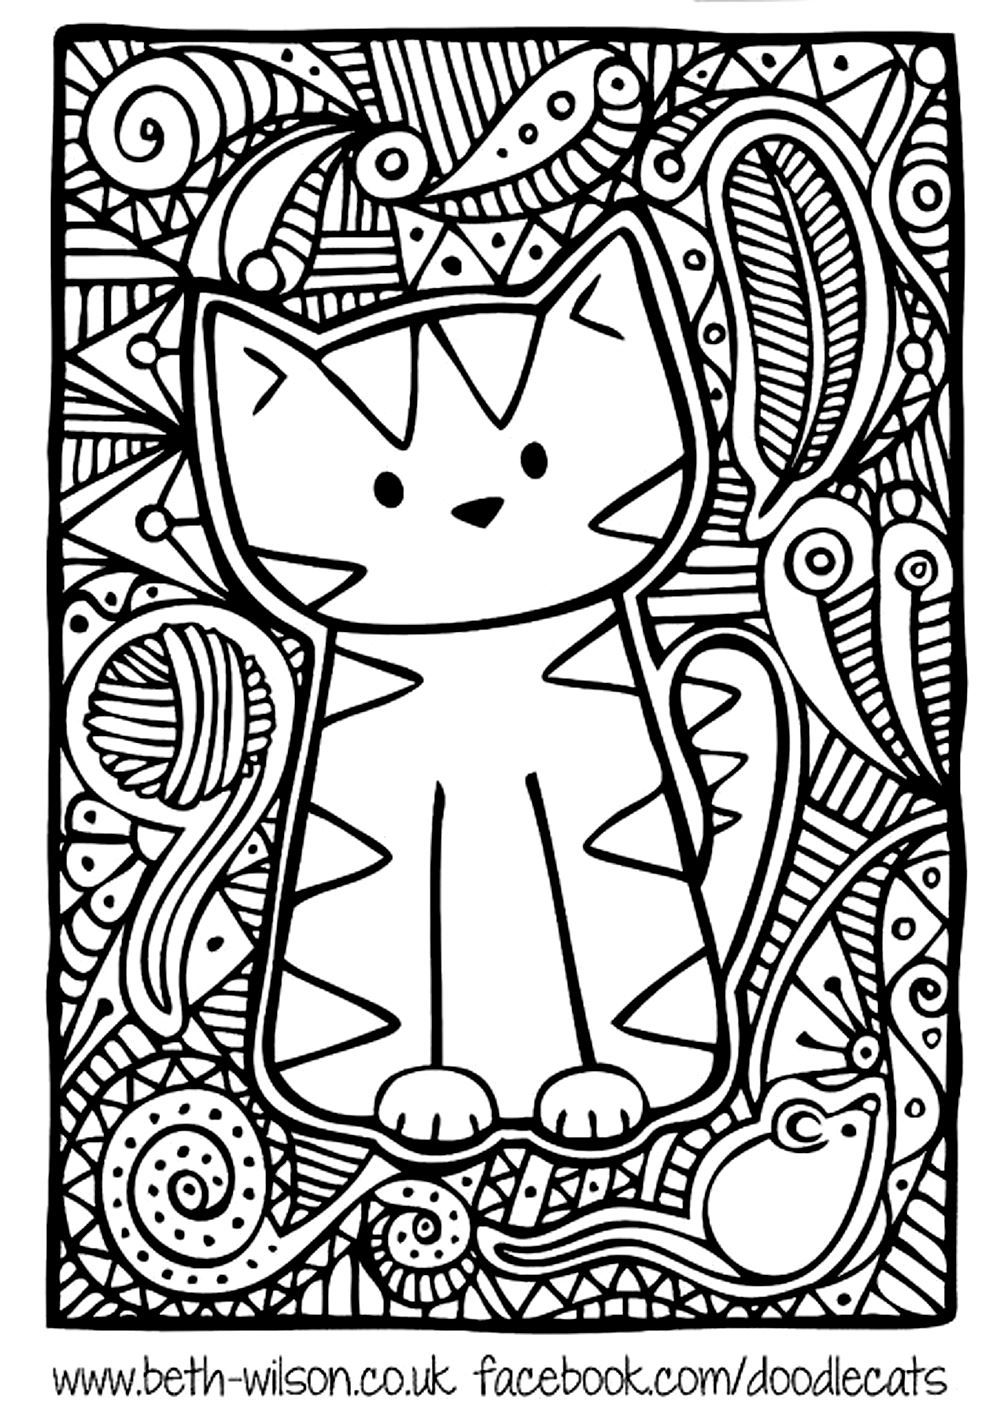 Halloween Coloring Pages For Adults Coloring Adult Halloween Zentangle Bat Coloriage Coloriage Chat Coloriage Insectes